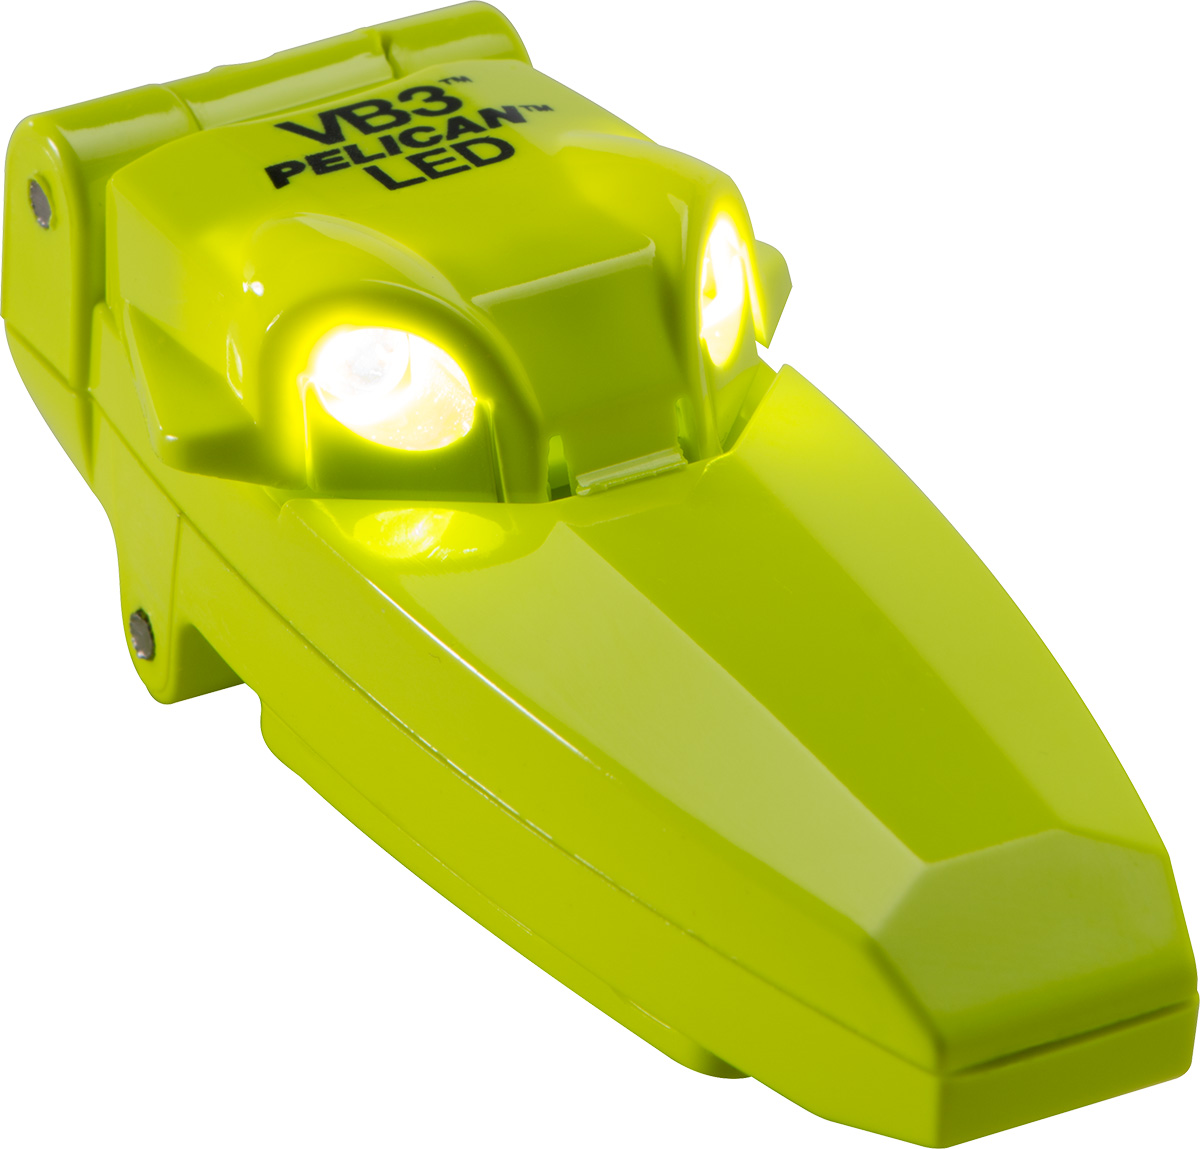 pelican 2220 best yellow clipon shirt led light